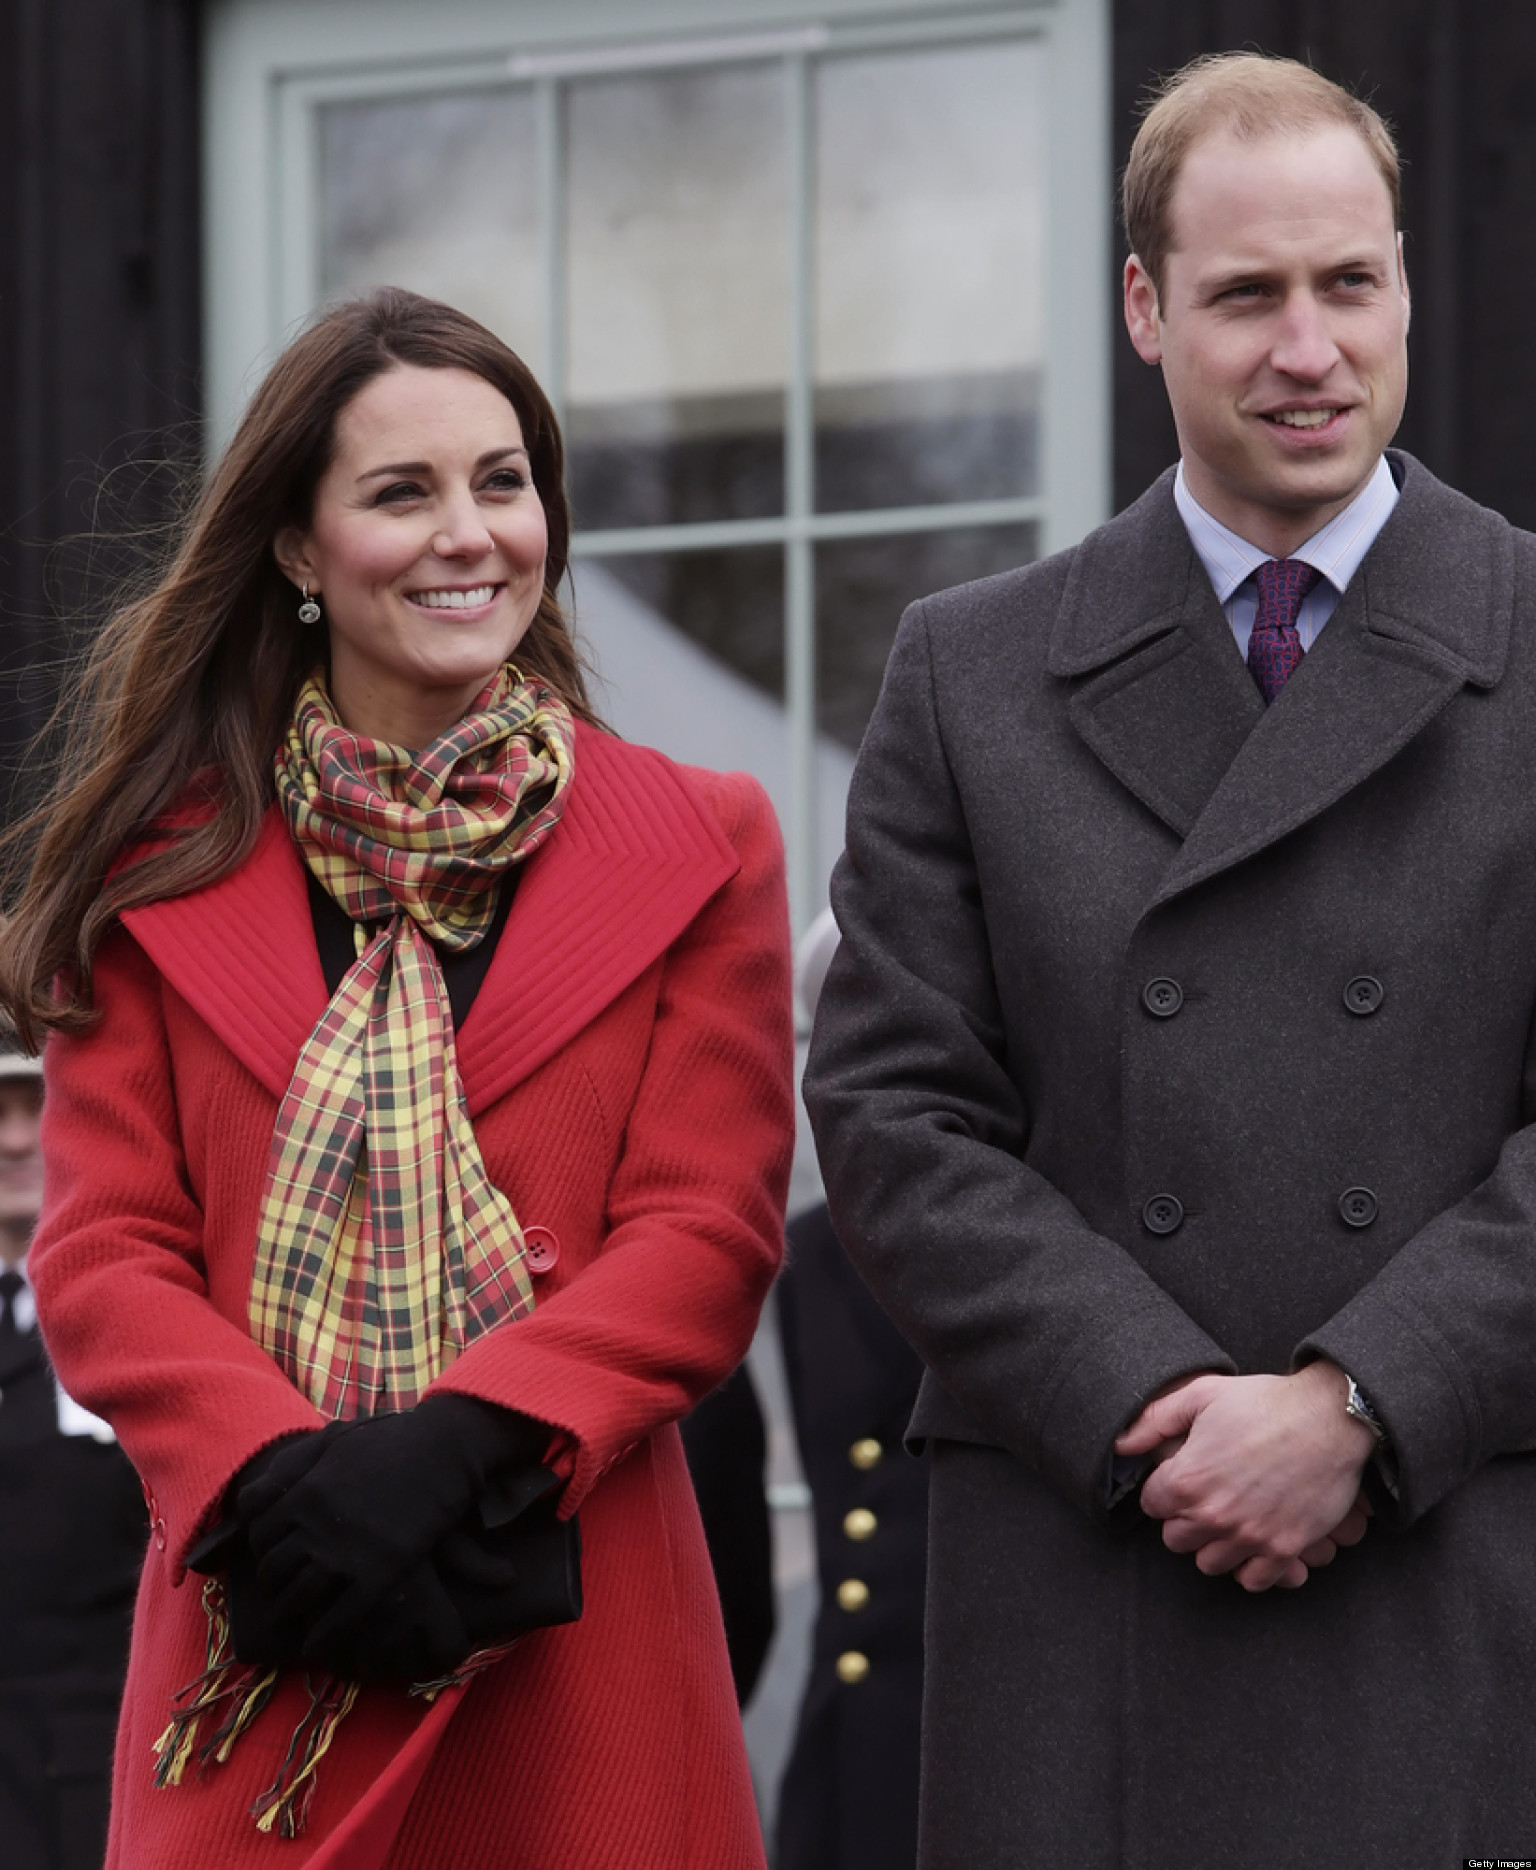 Prince William, Kate Middleton: The First 2 Years Of Their